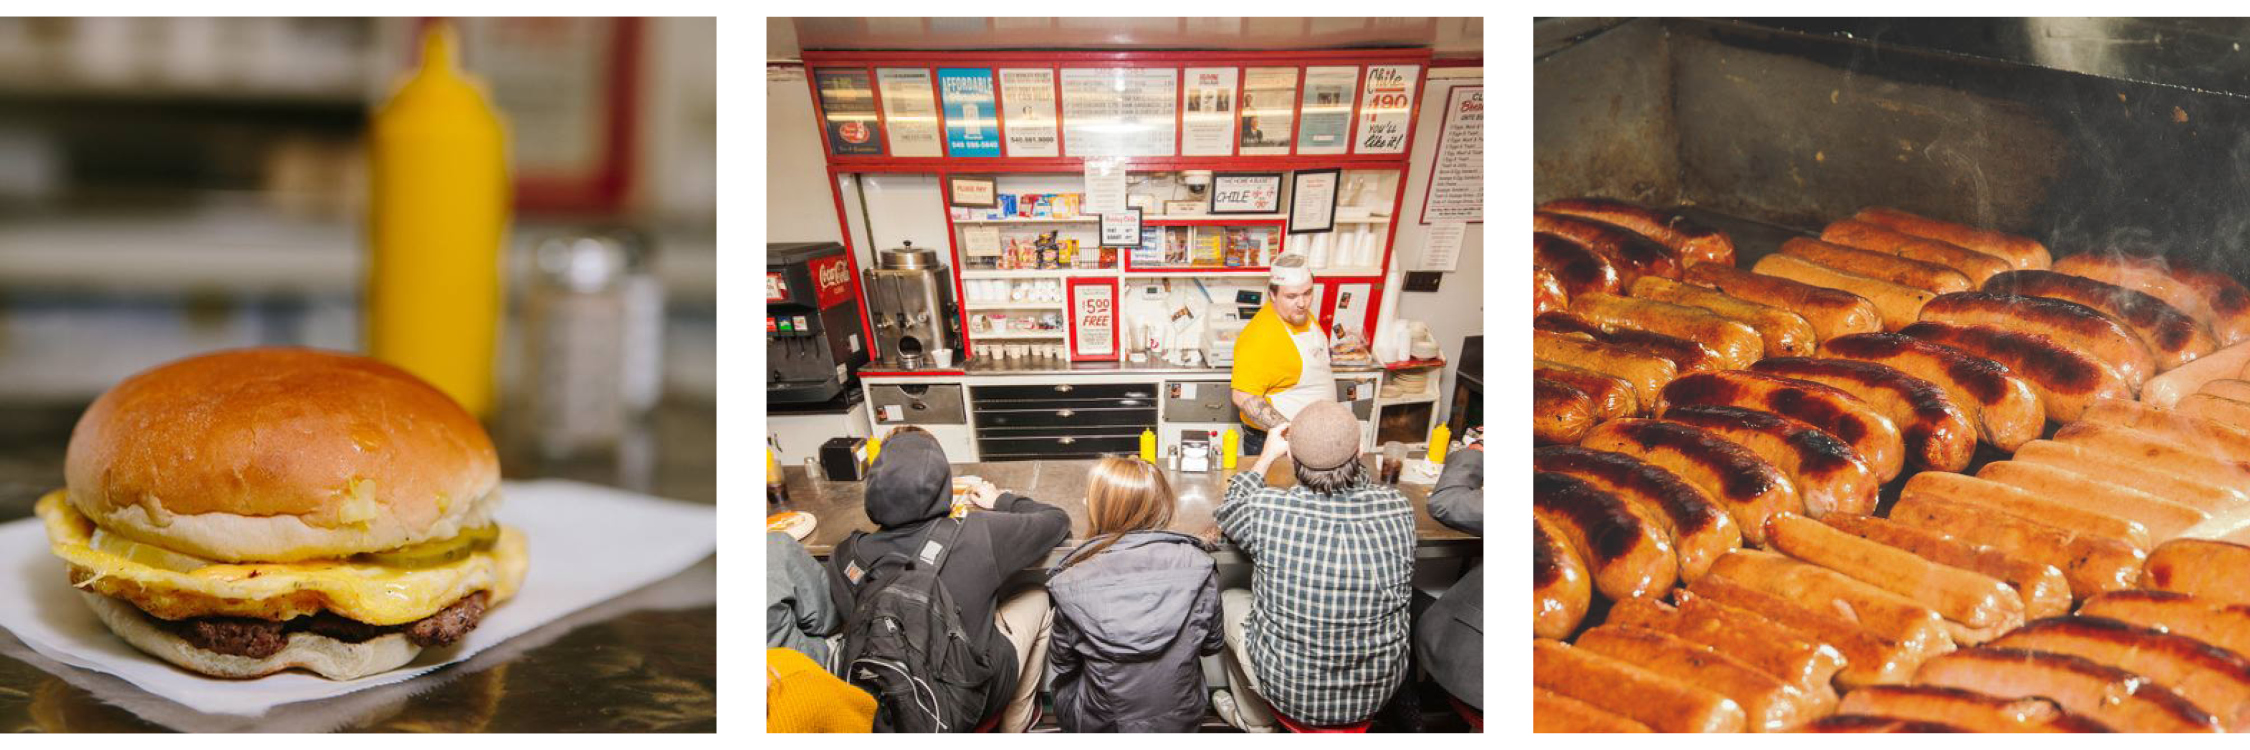 Images: Texas Tavern / Ben's Chili Bowl